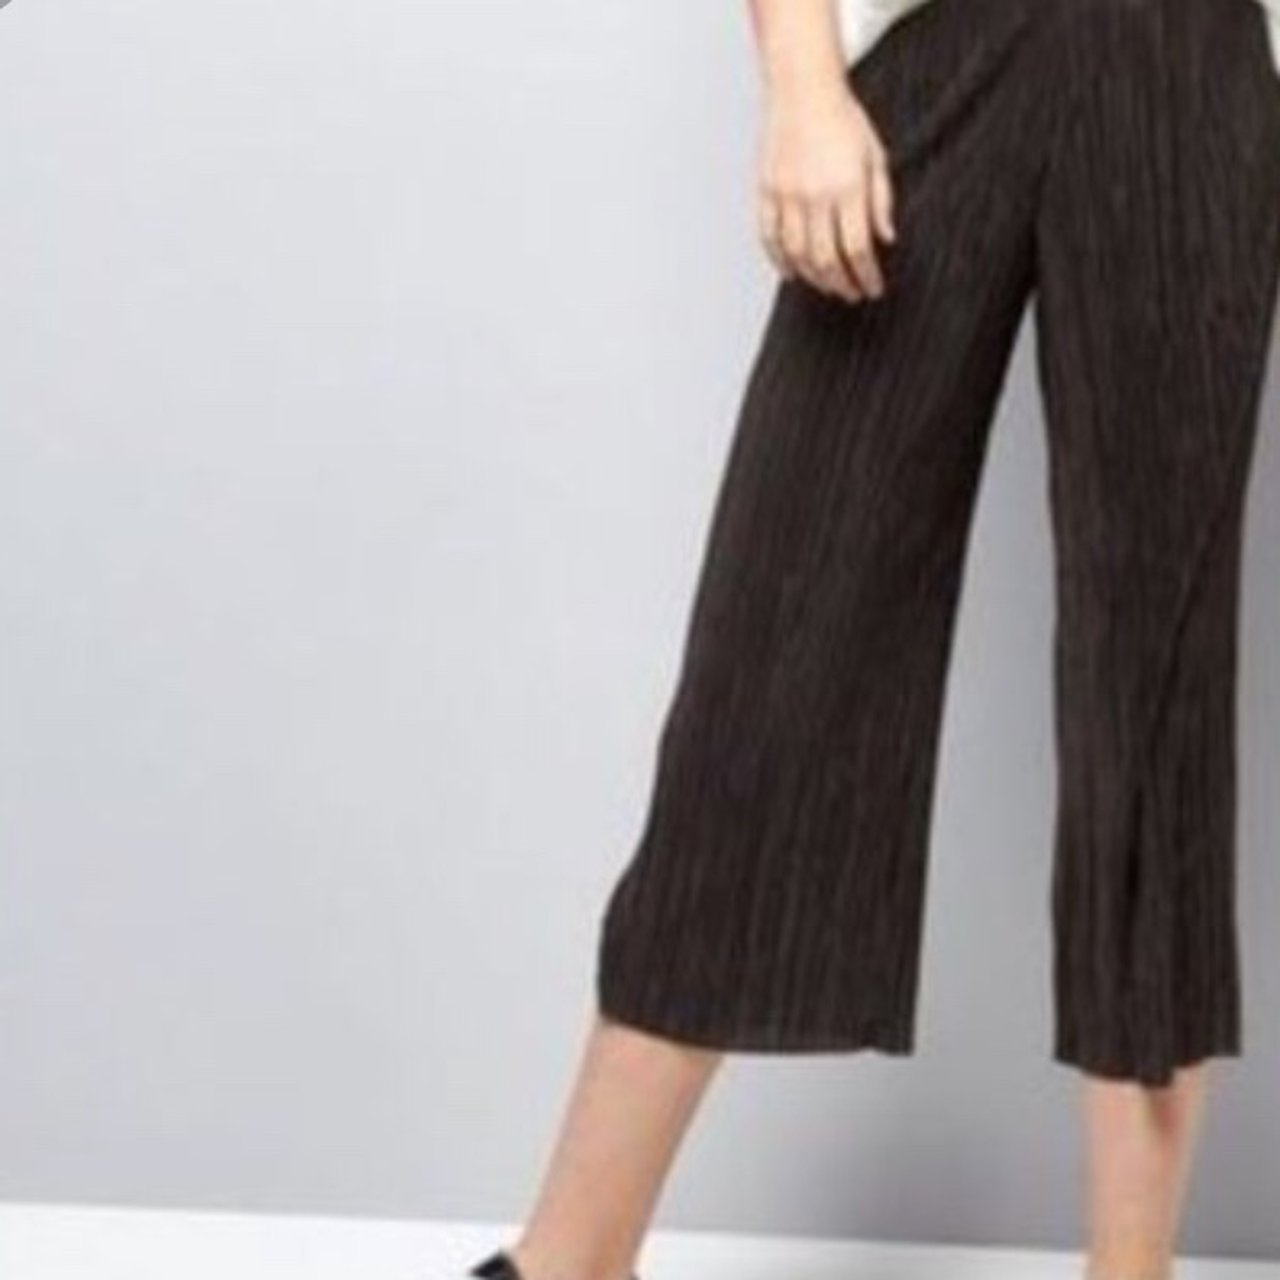 9f0eaa954393 Black plisse pleated culotte / cropped trouser BRAND NEW fit - Depop